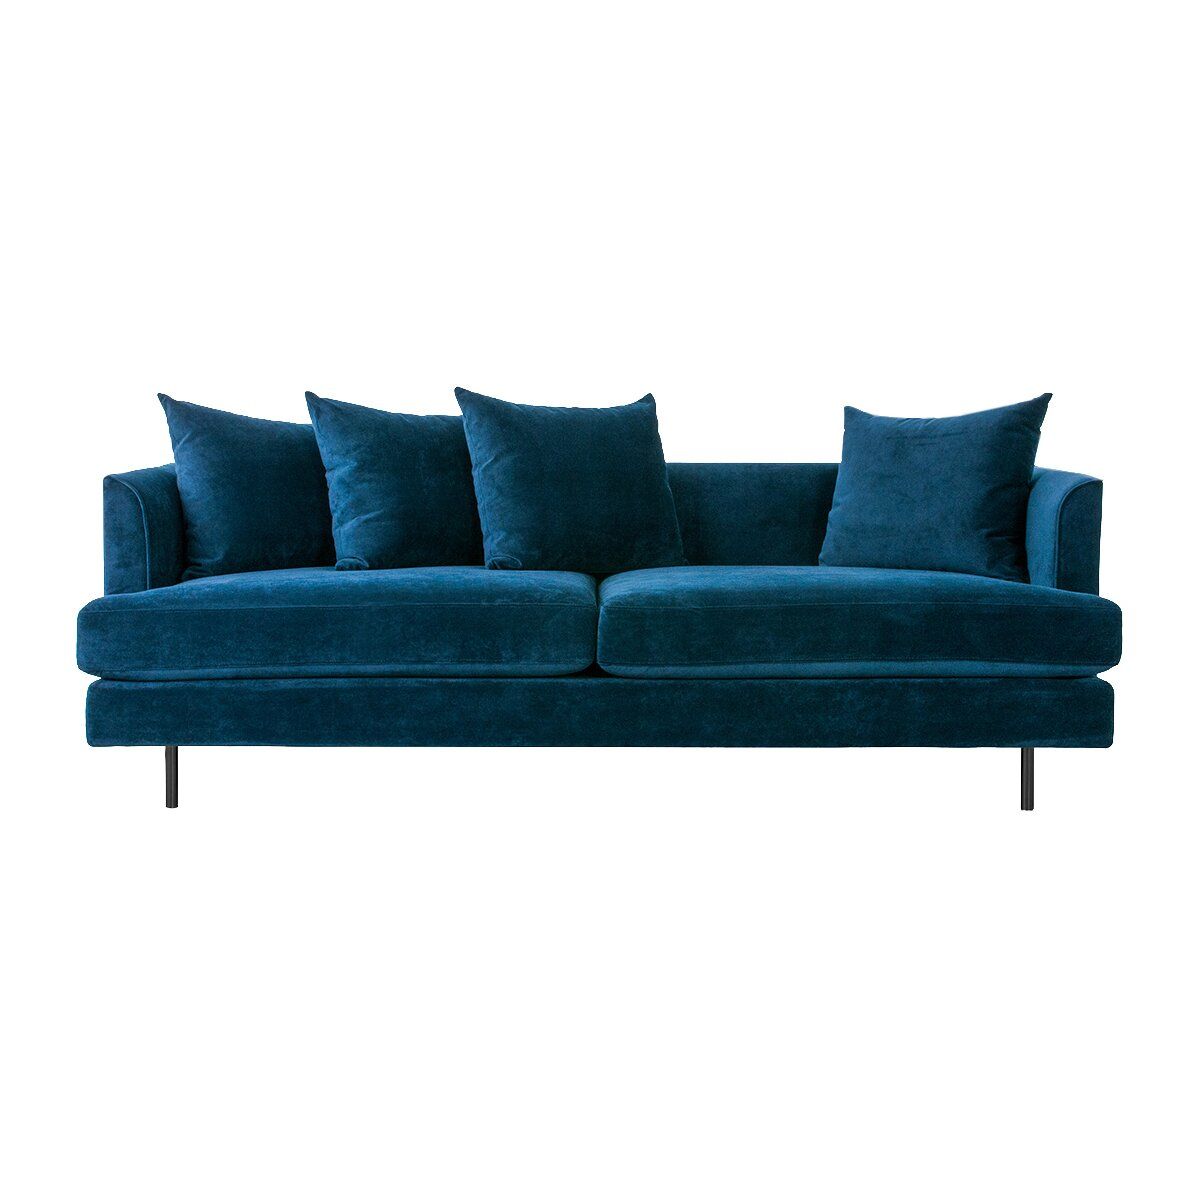 margot sofa with cushions reviews allmodern. Black Bedroom Furniture Sets. Home Design Ideas